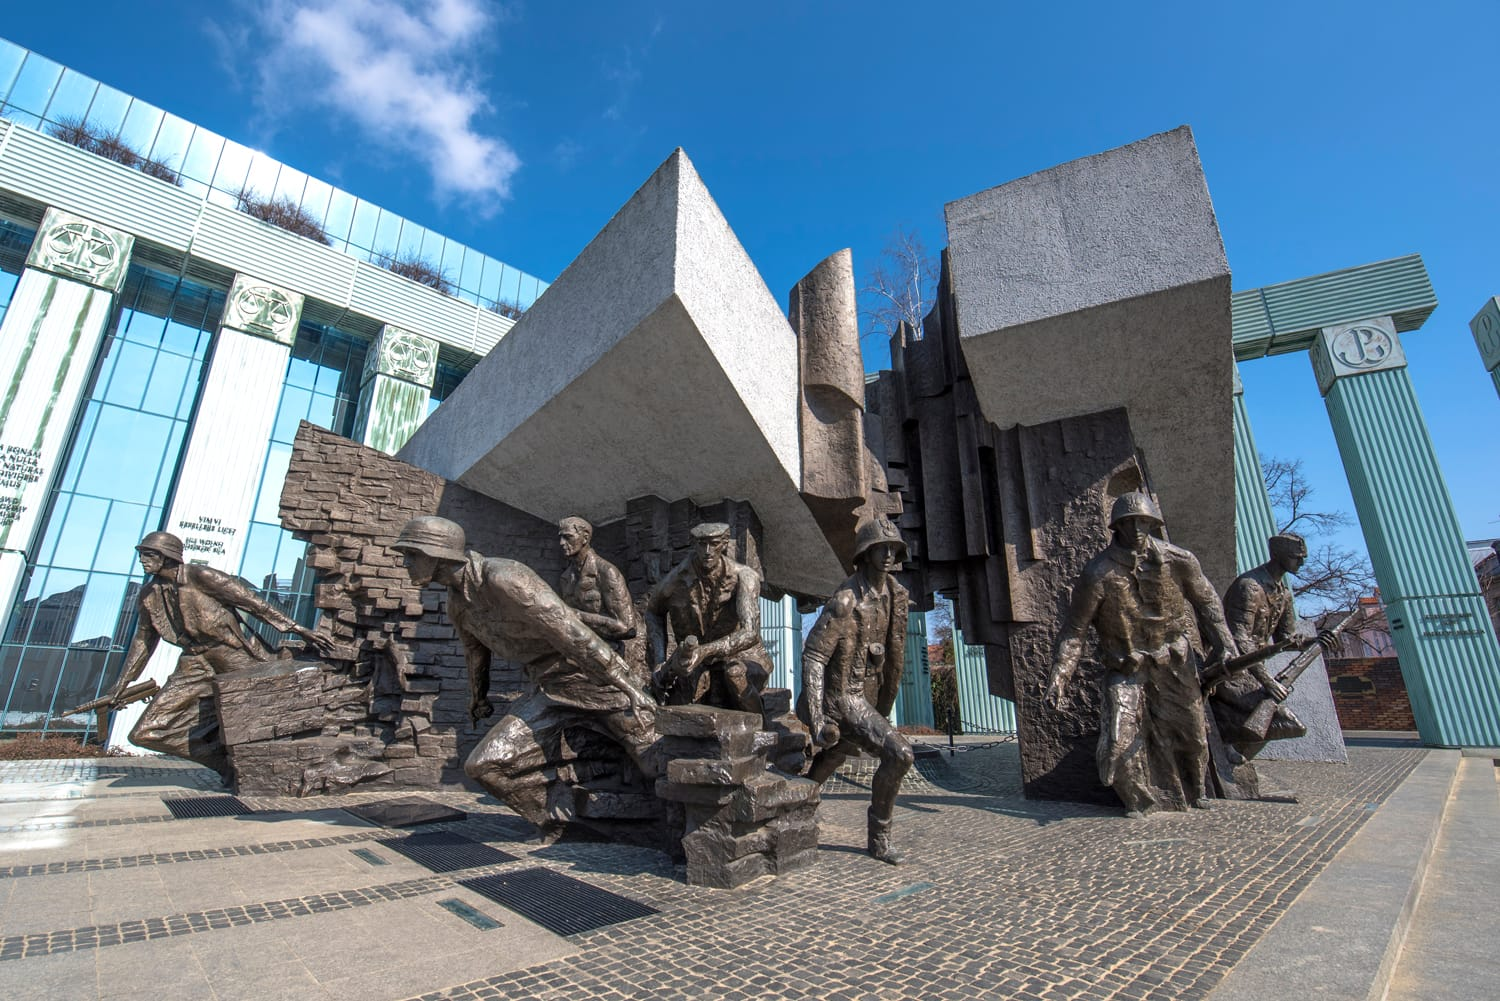 Monument to the Warsaw Rising dedicated to Warsaw Uprising in 1944 against the Nazi occupiers. This striking bronze tableau depicts Armia Krajowa fighters.